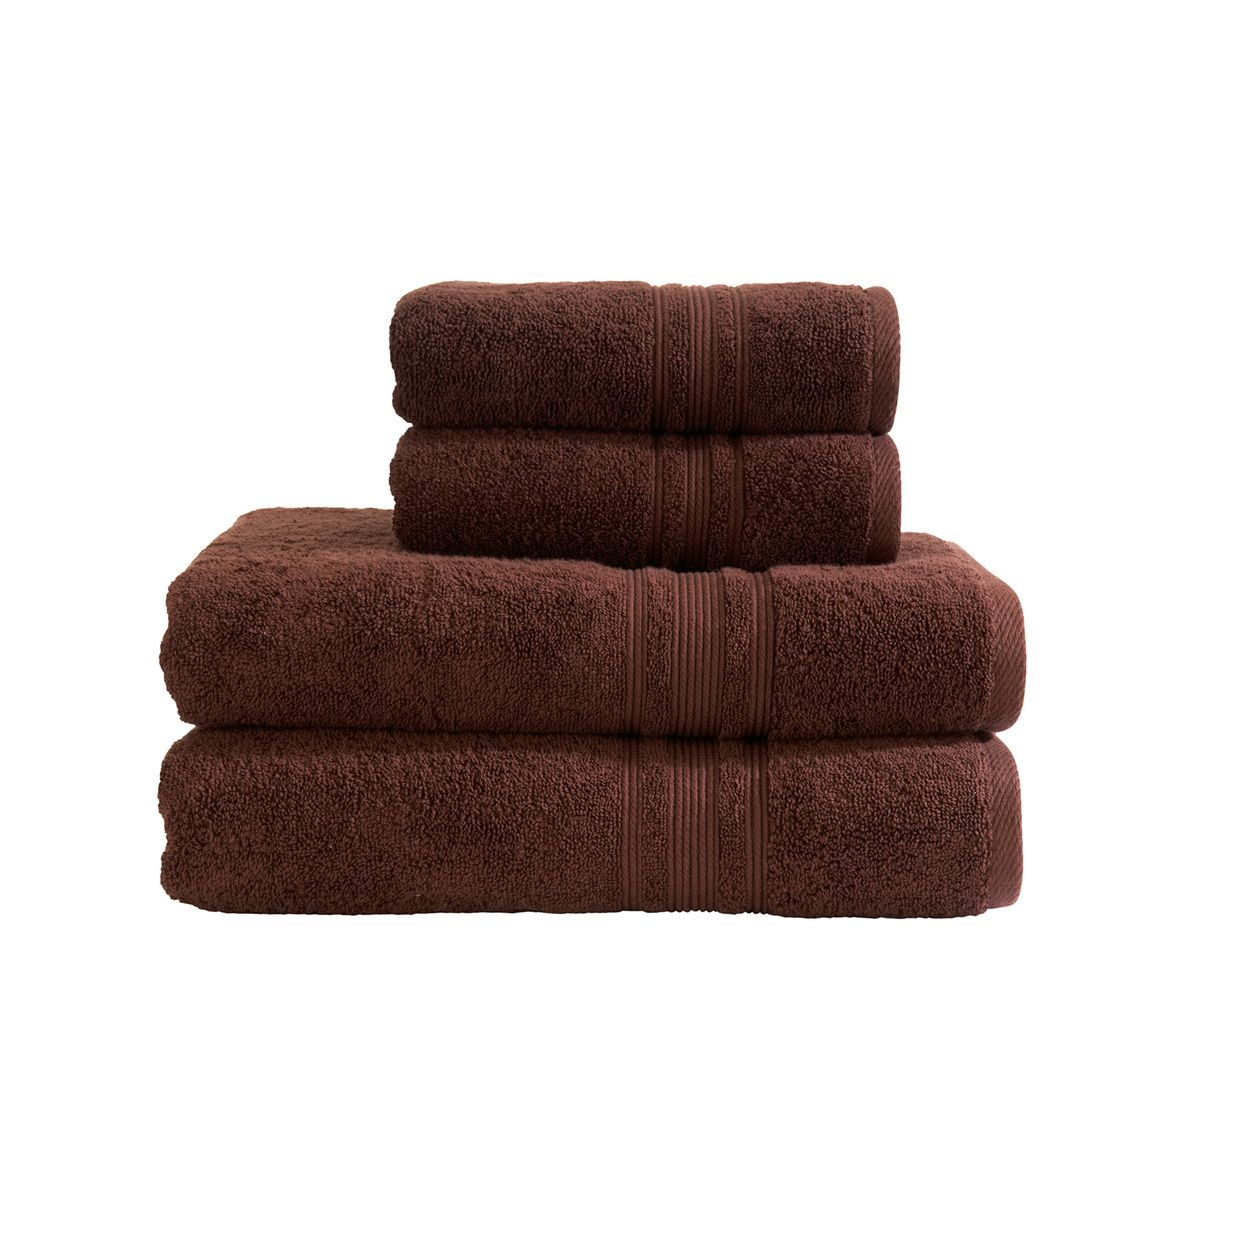 Charisma Bath Towels Cool Towels Costco Uk  Charisma Hygrocotton 4 Piece Hand And Bath Towel Design Inspiration